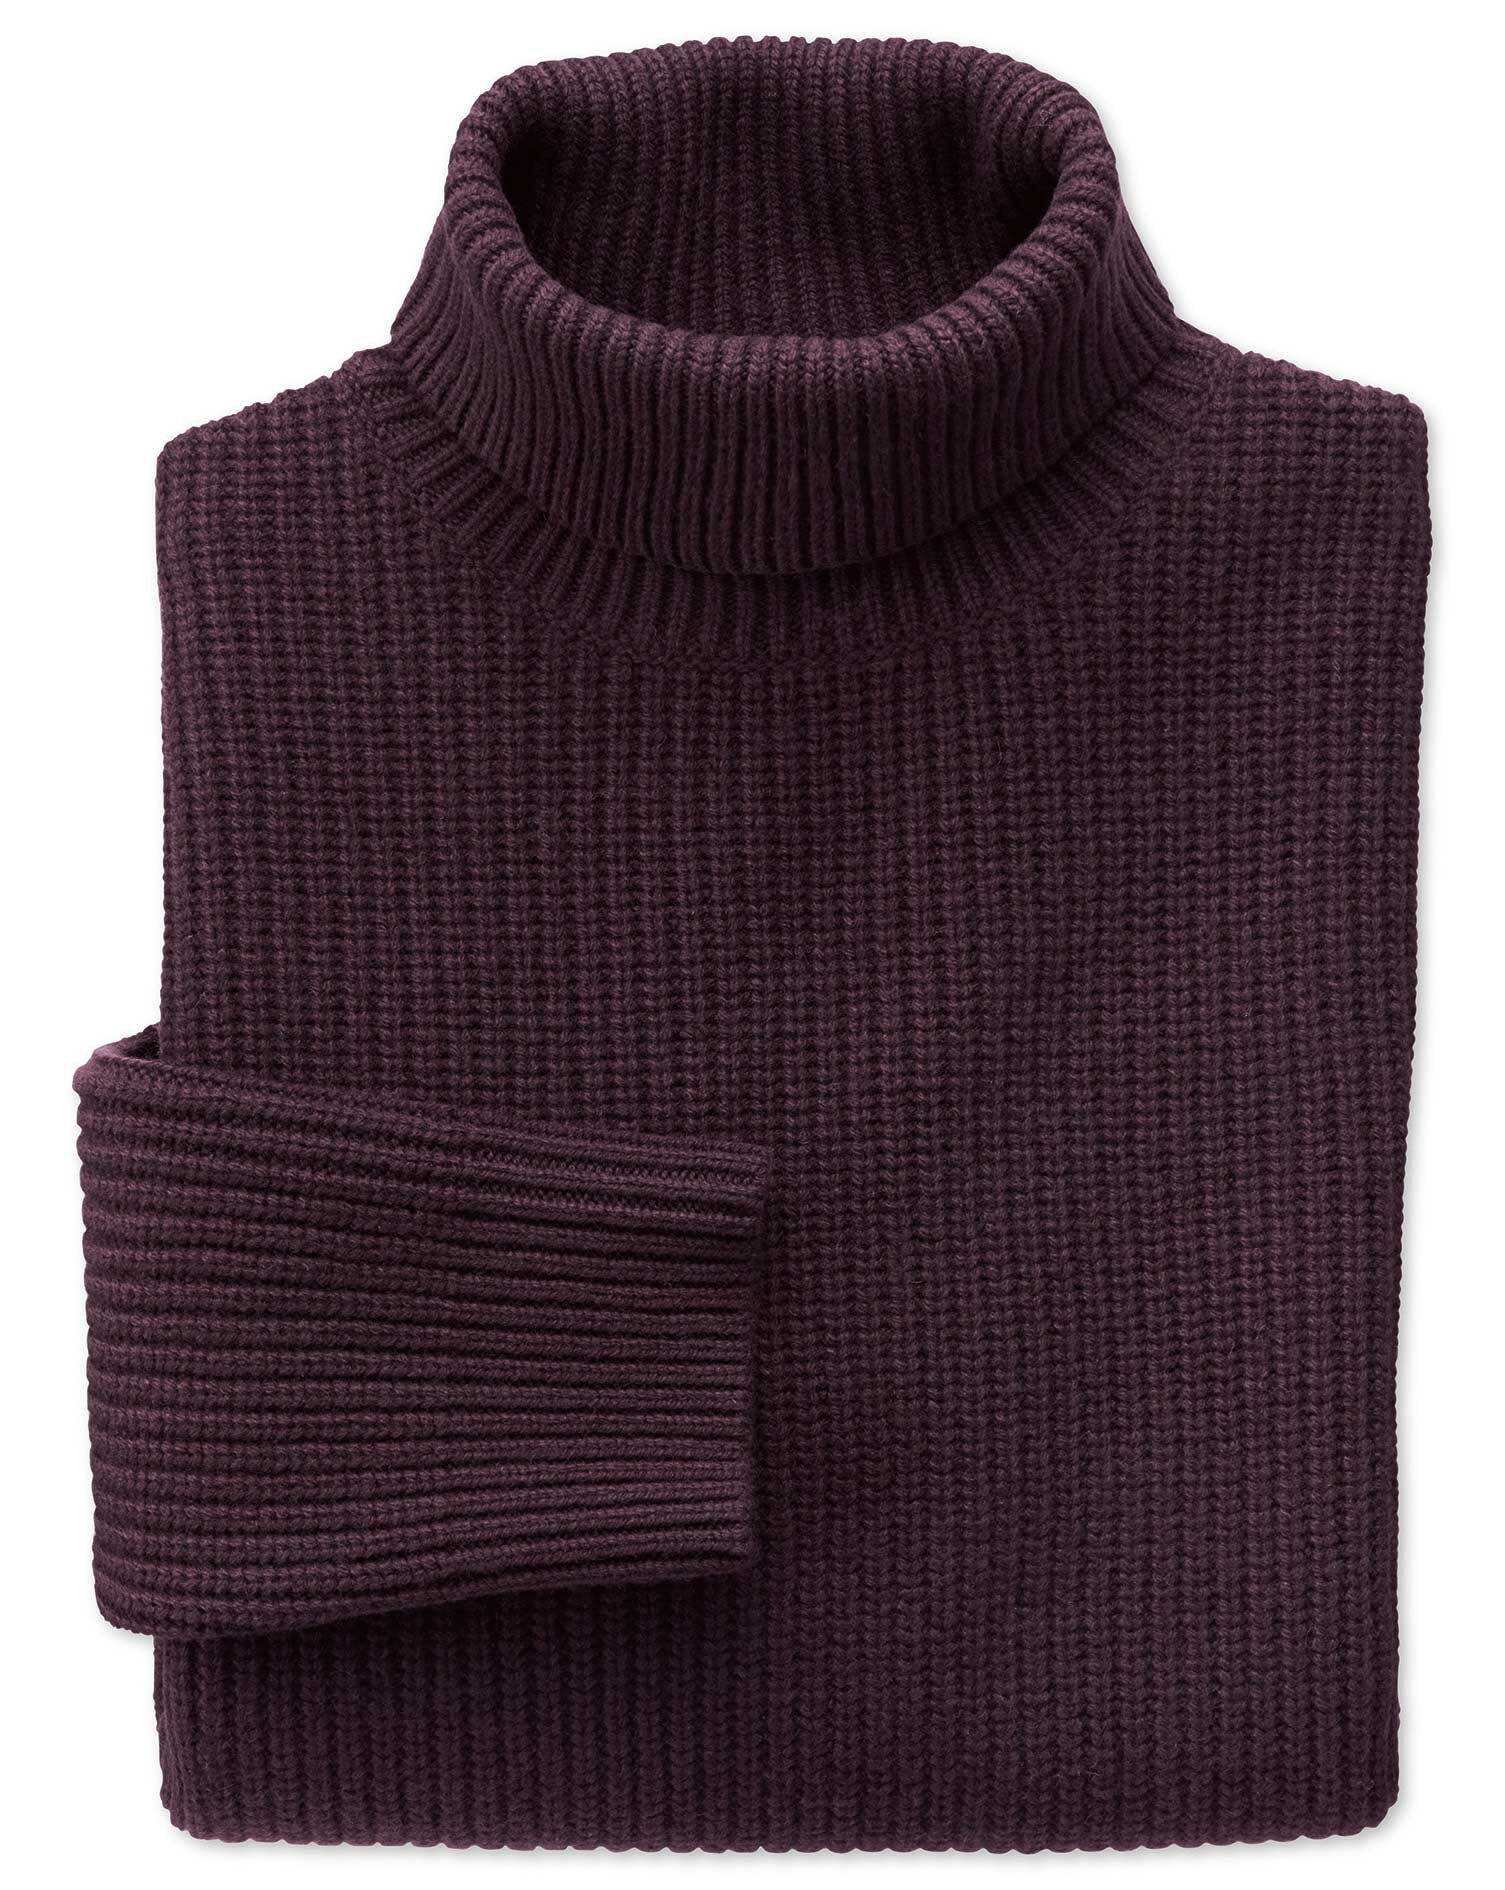 Wine Rib Roll Neck Wool Jumper Size Large by Charles Tyrwhitt